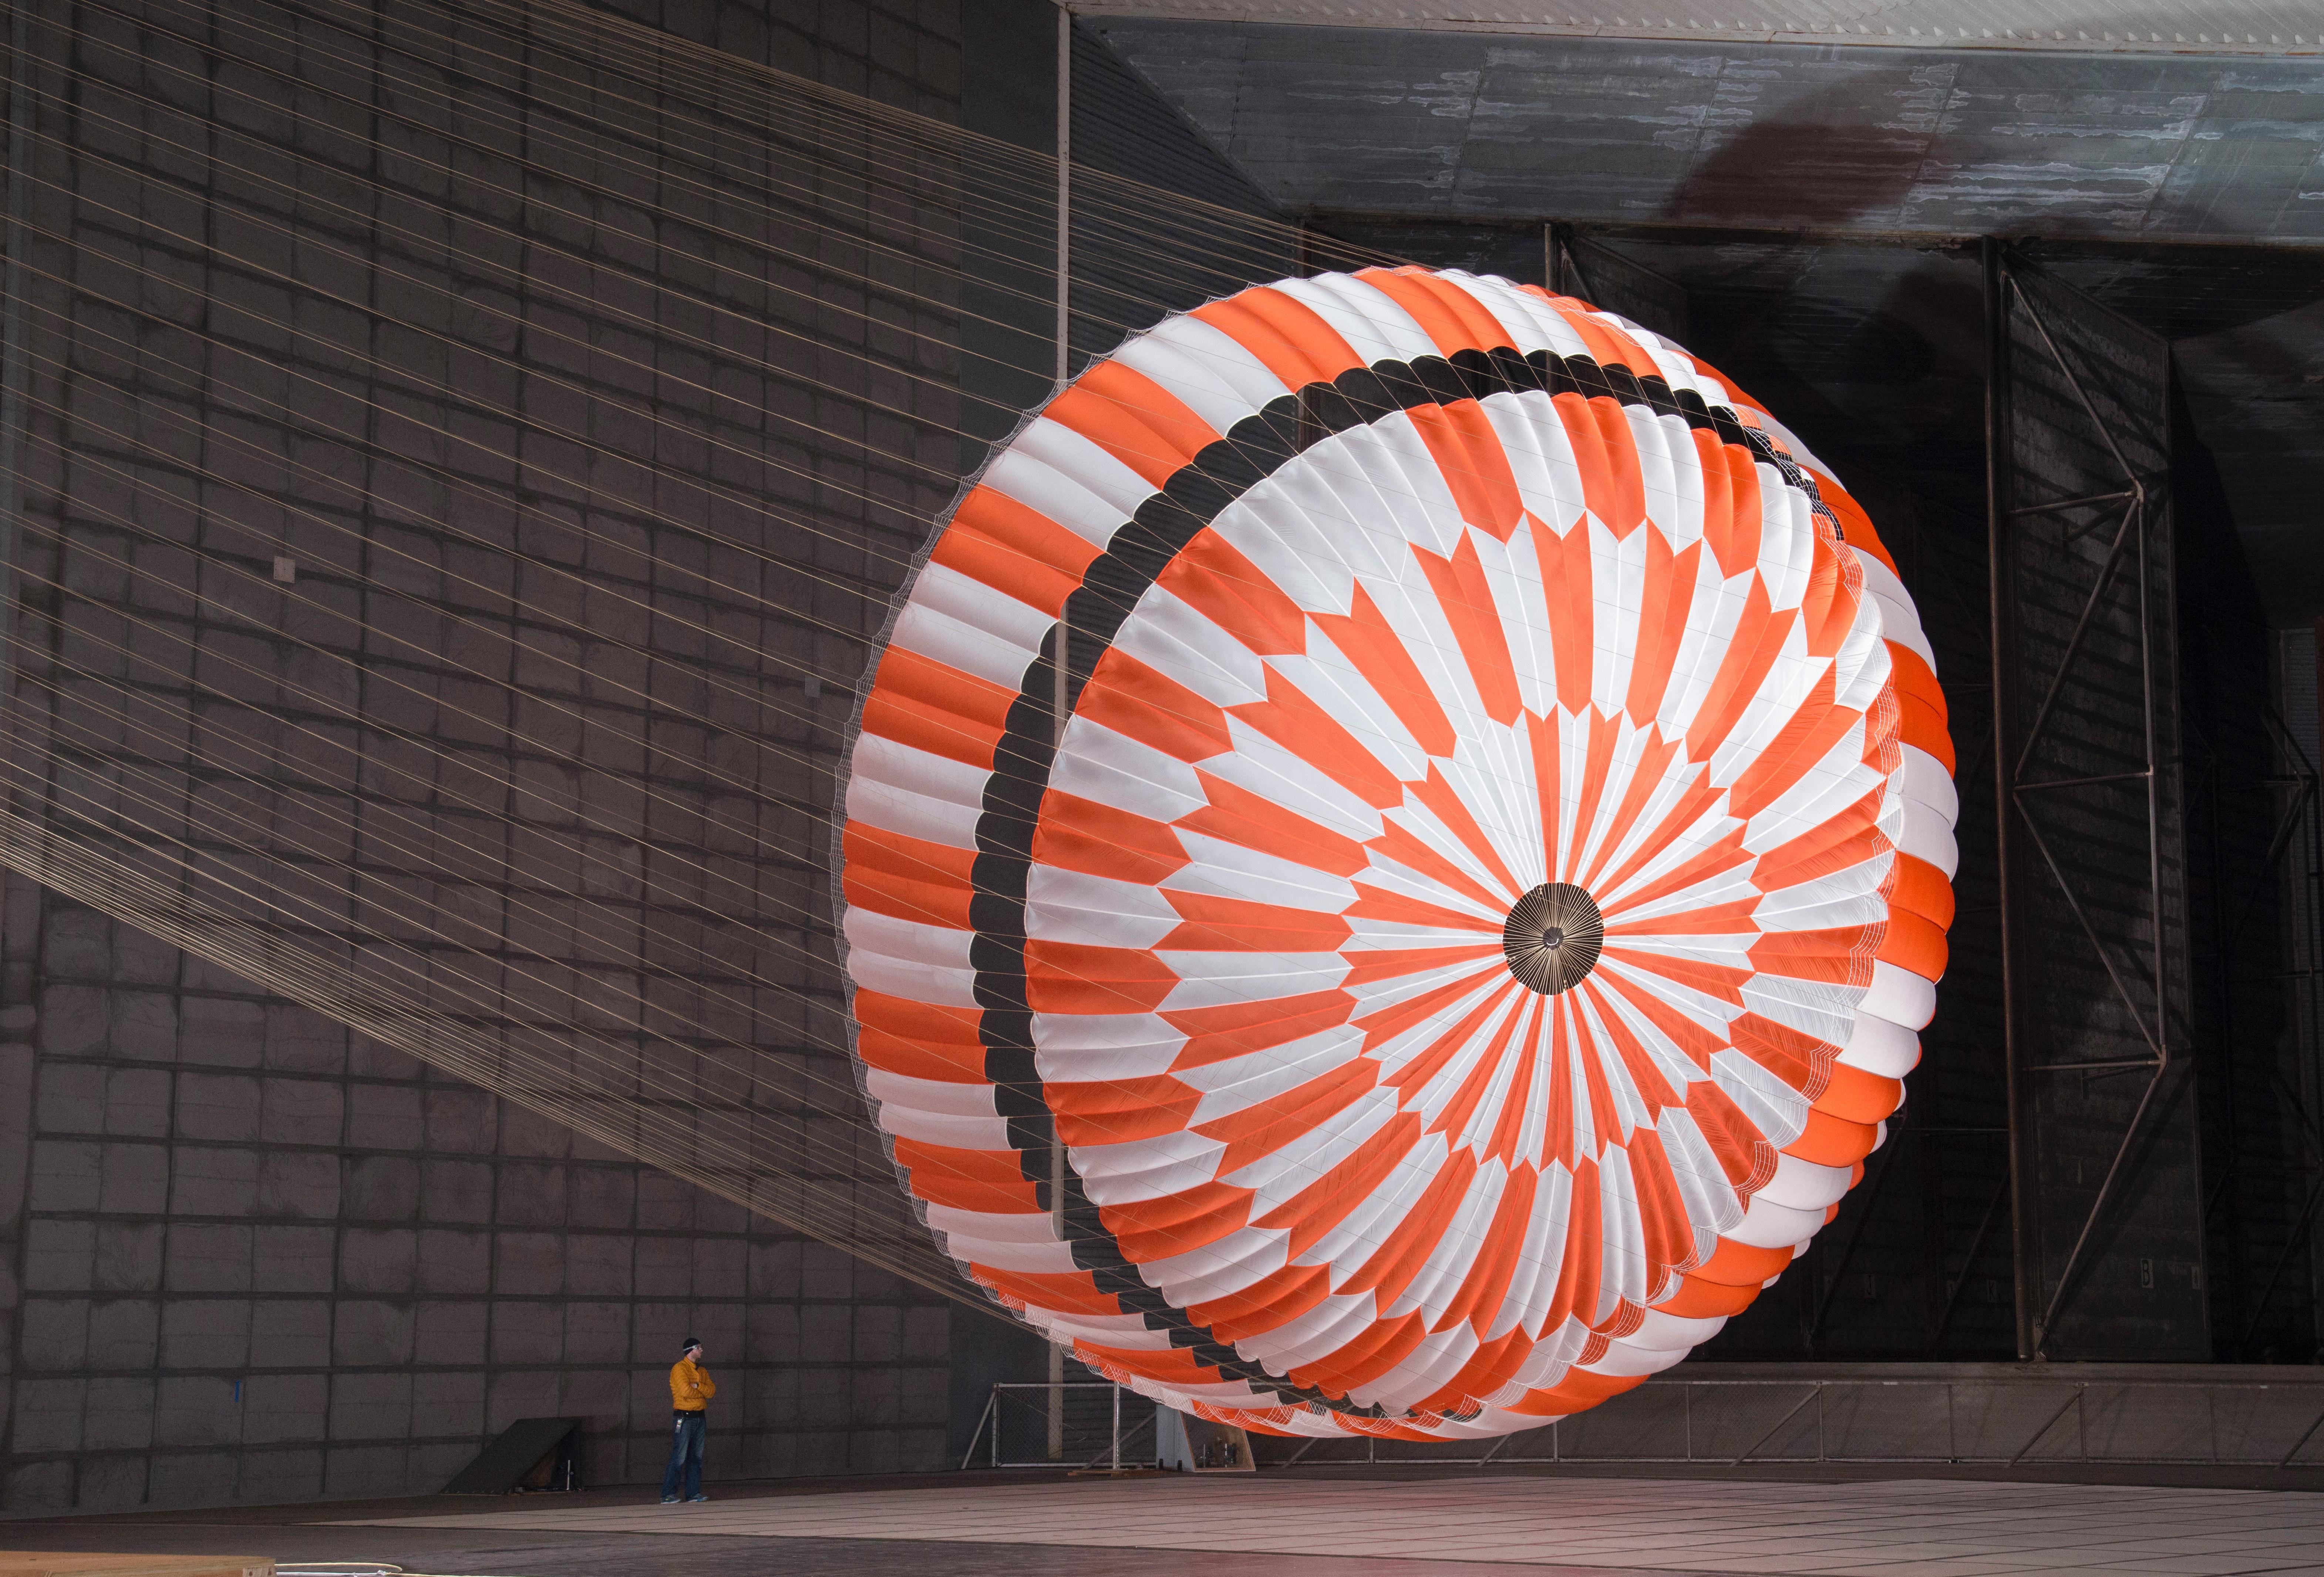 In this June 2017 photo, the supersonic parachute design that will land NASAs Perseverance rover on Mars on Feb. 18, 2021, undergoes testing in a wind tunnel at NASAs Ames Research Center in Californias Silicon Valley.